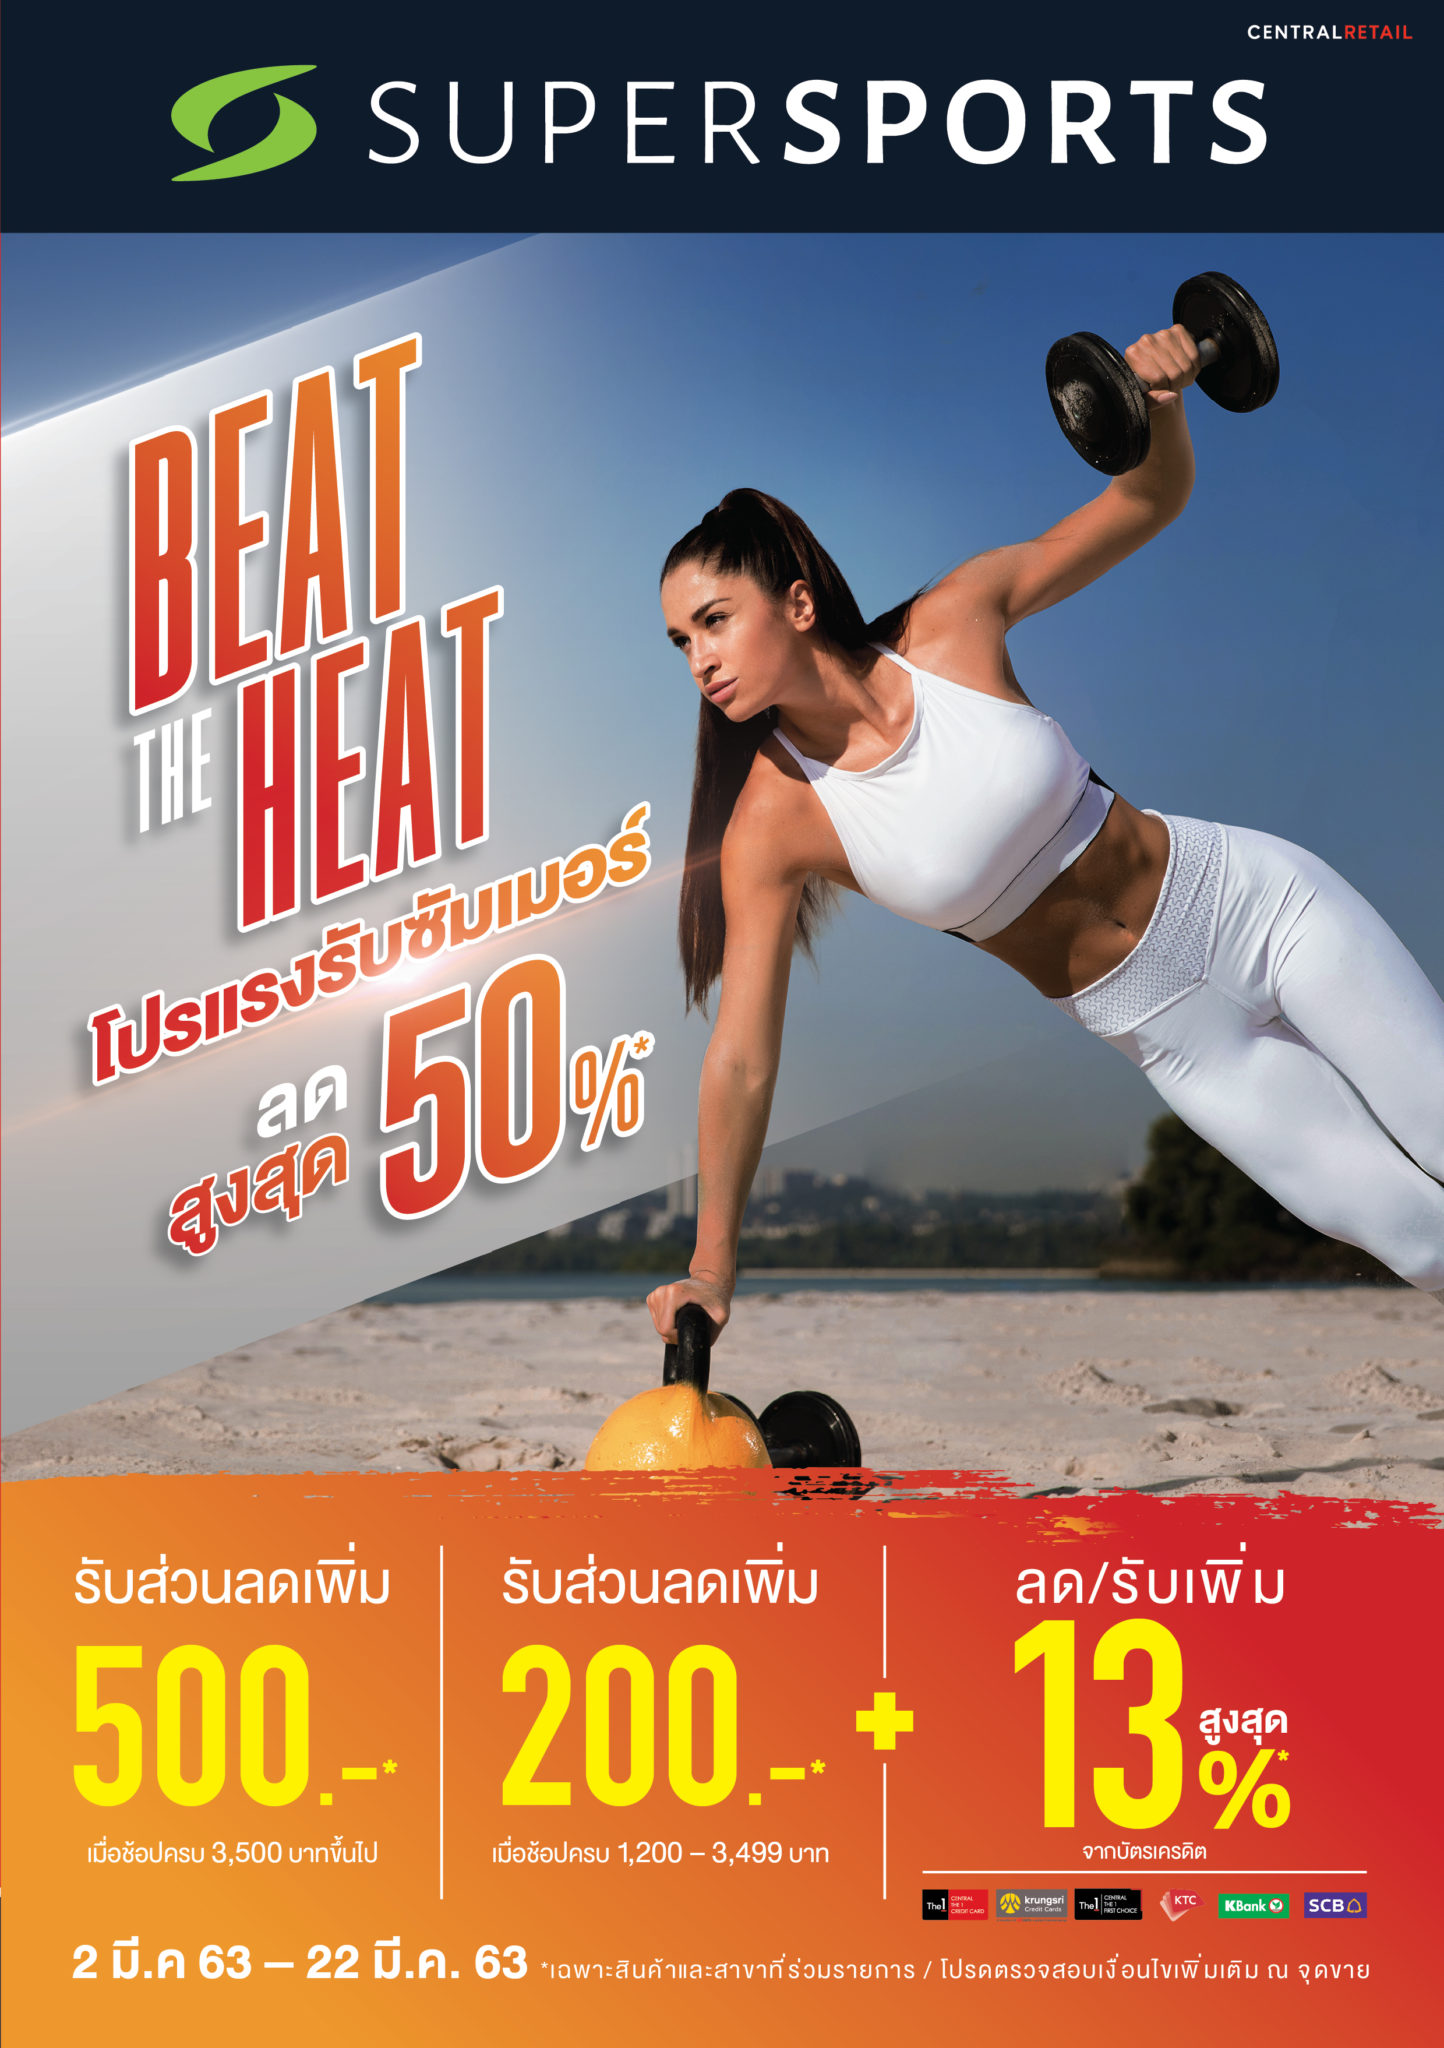 AW SSP Beat the Heat 2020 Cover-02